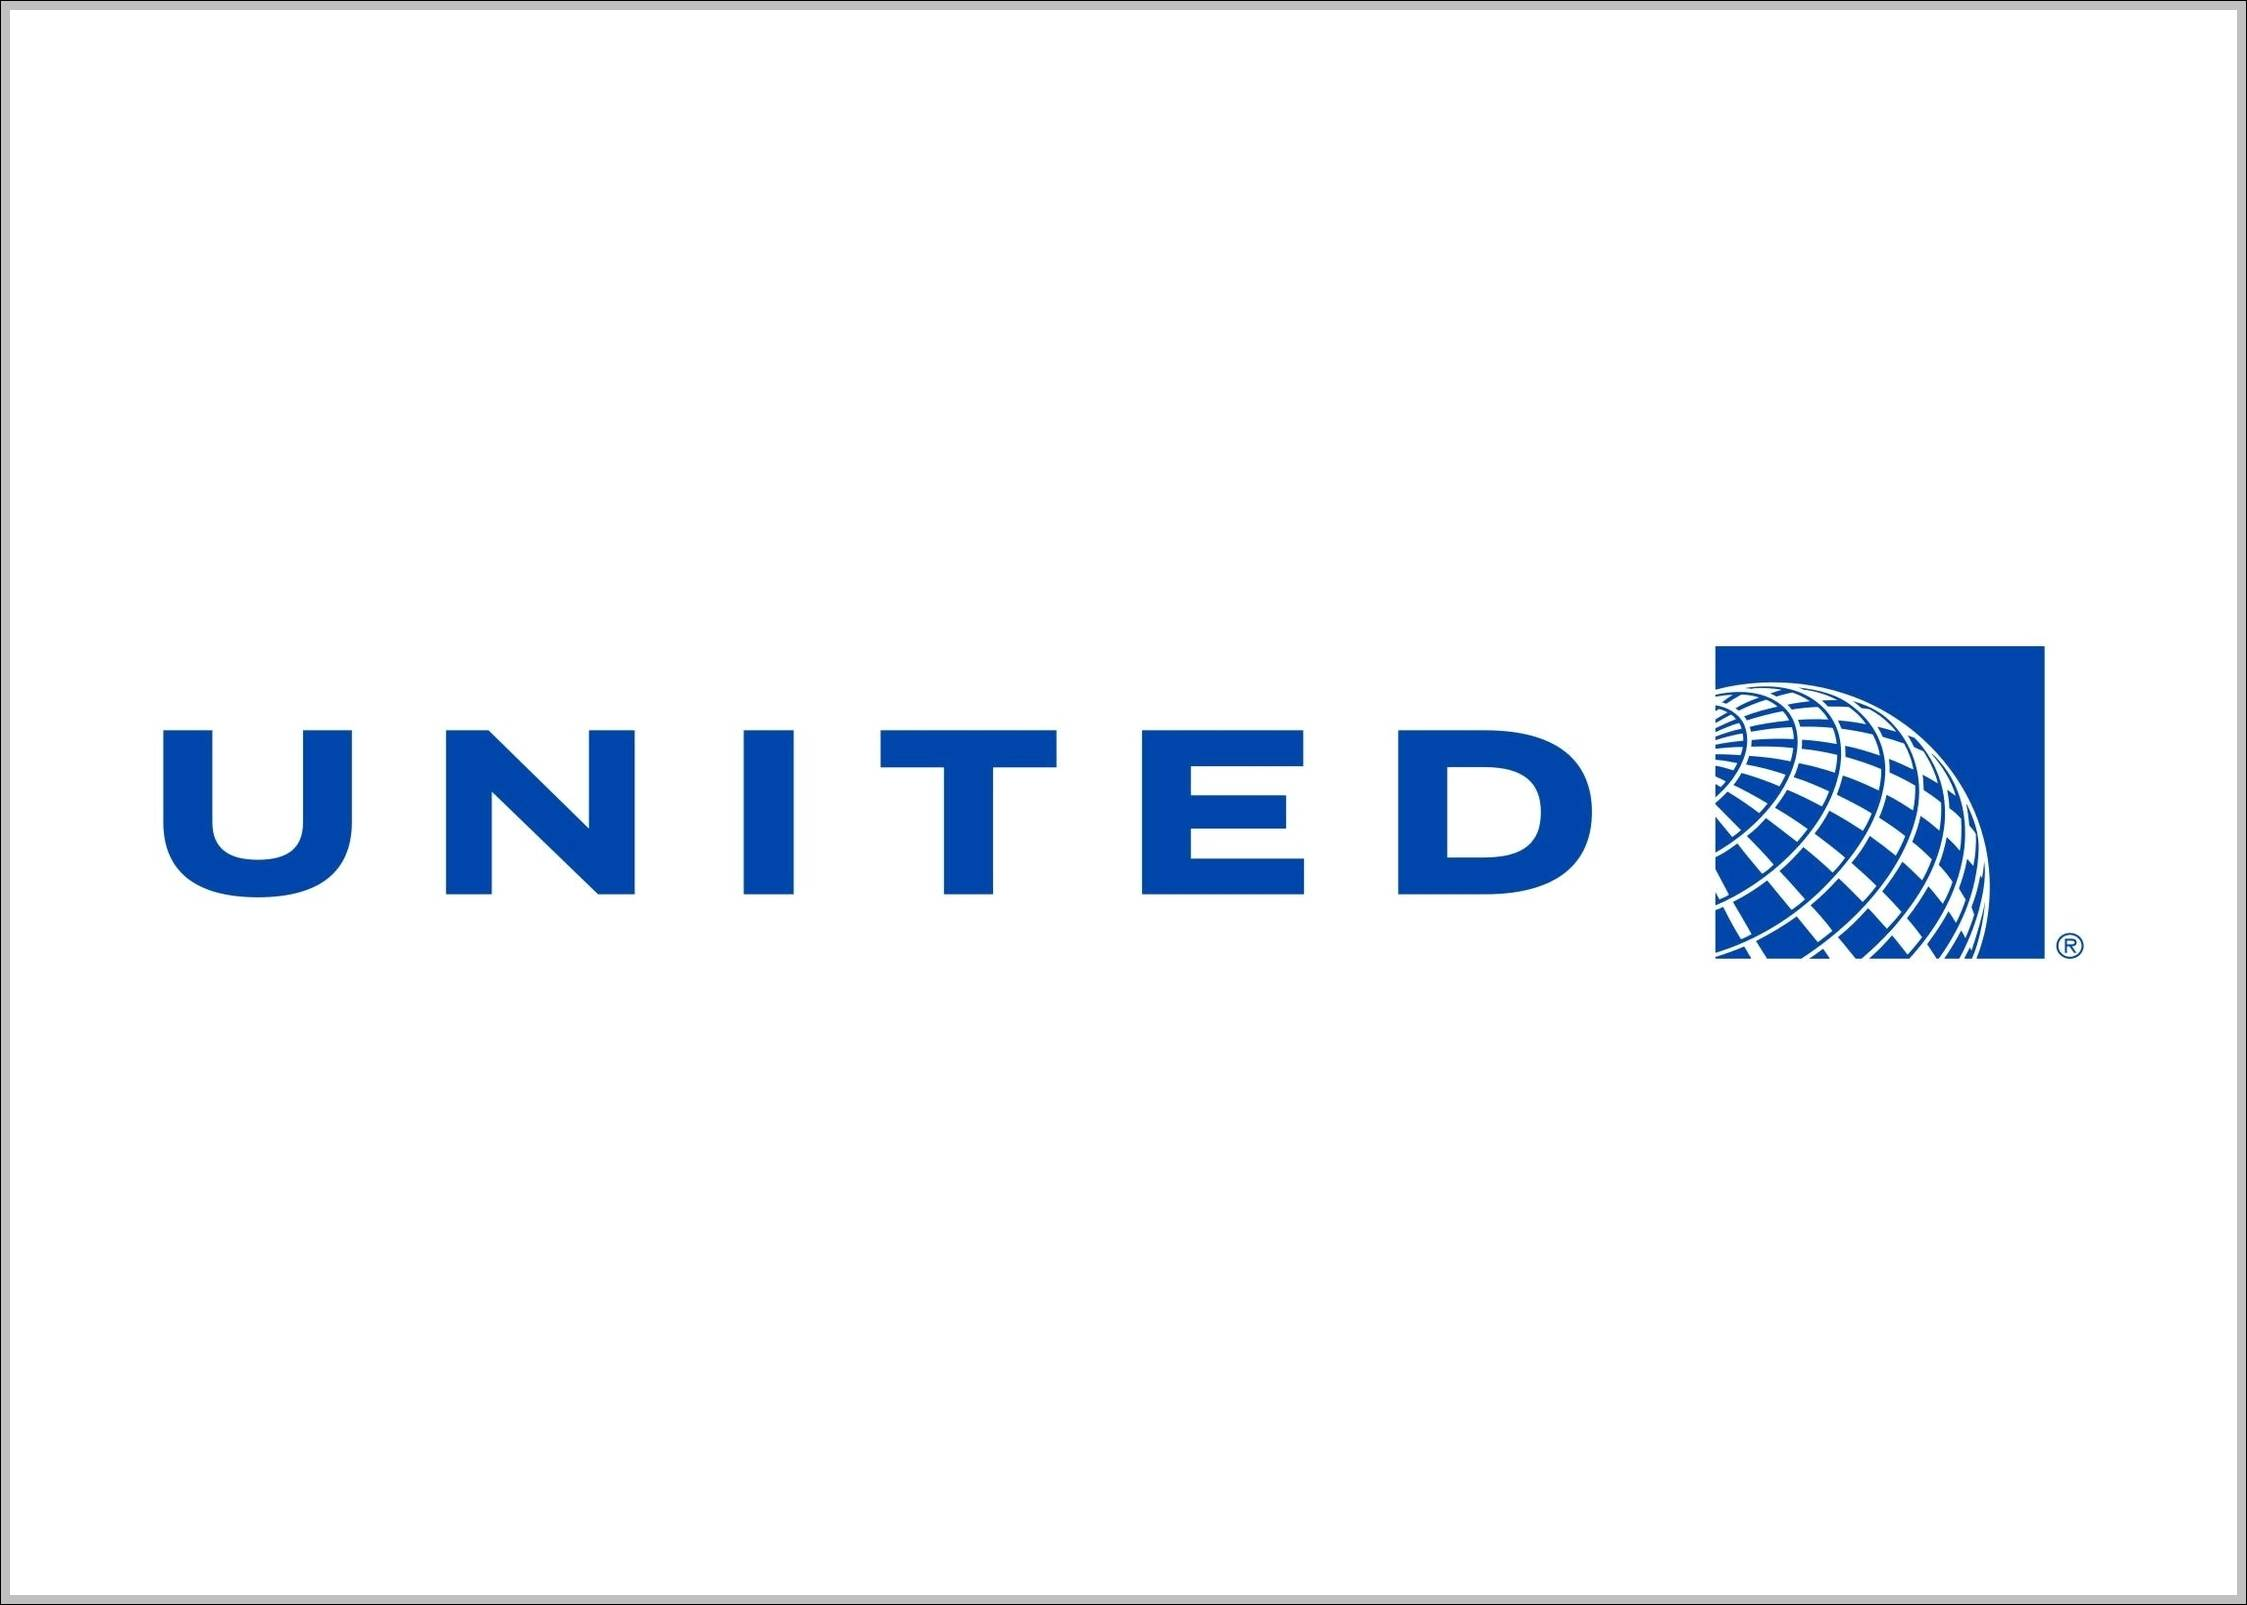 United Airlines 2010 logo